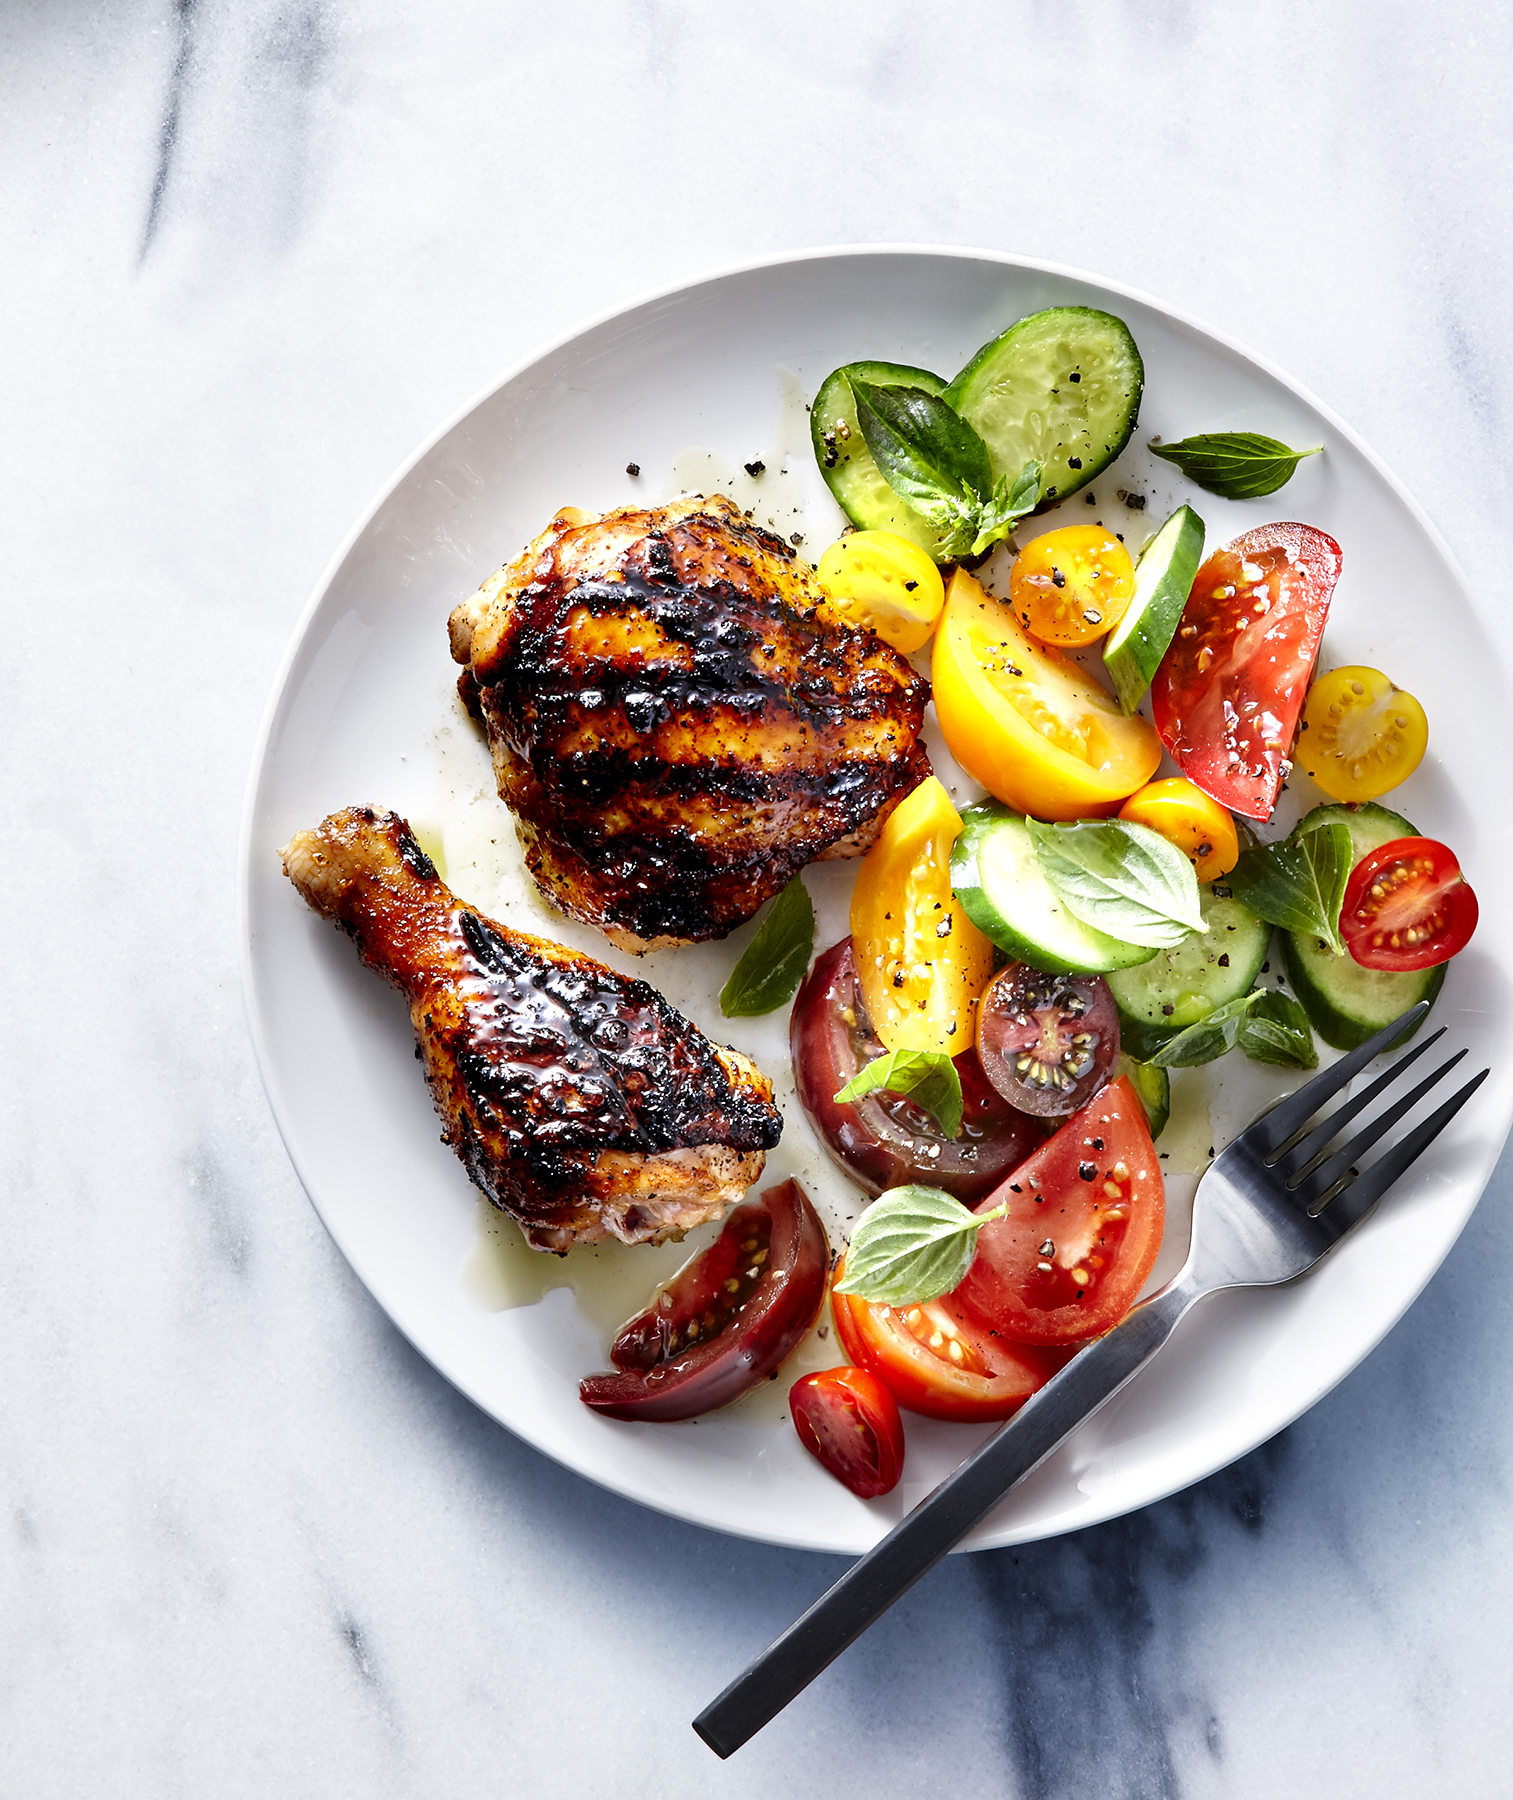 Grilled Chicken With Tomato-Cucumber Salad